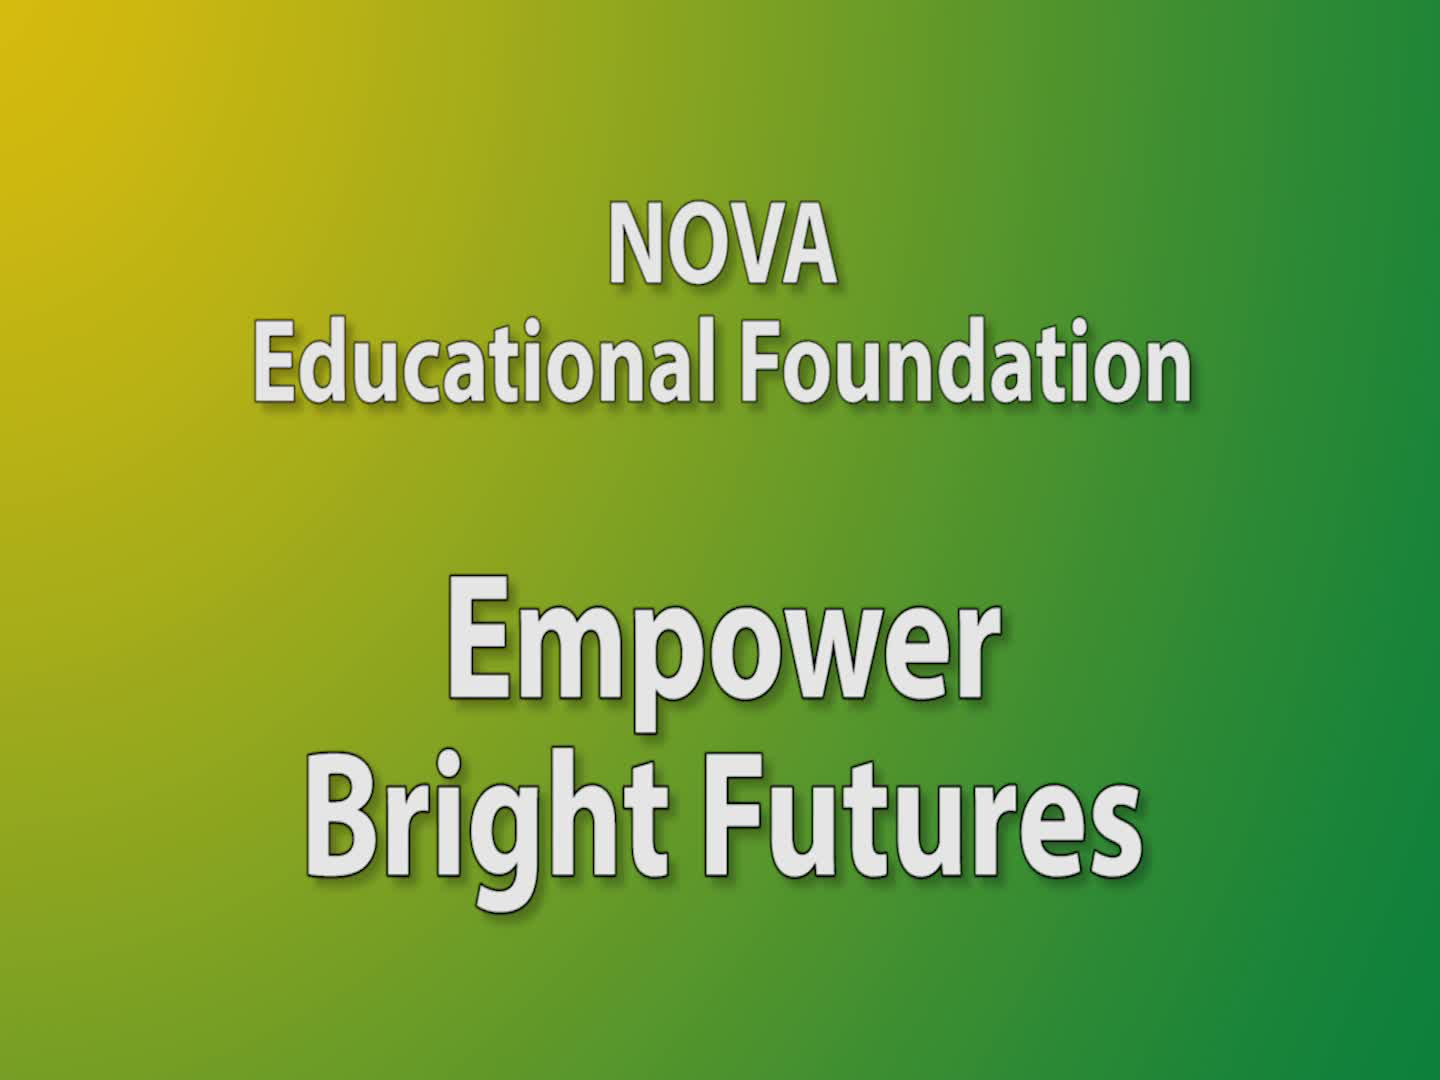 Empower Bright Futures